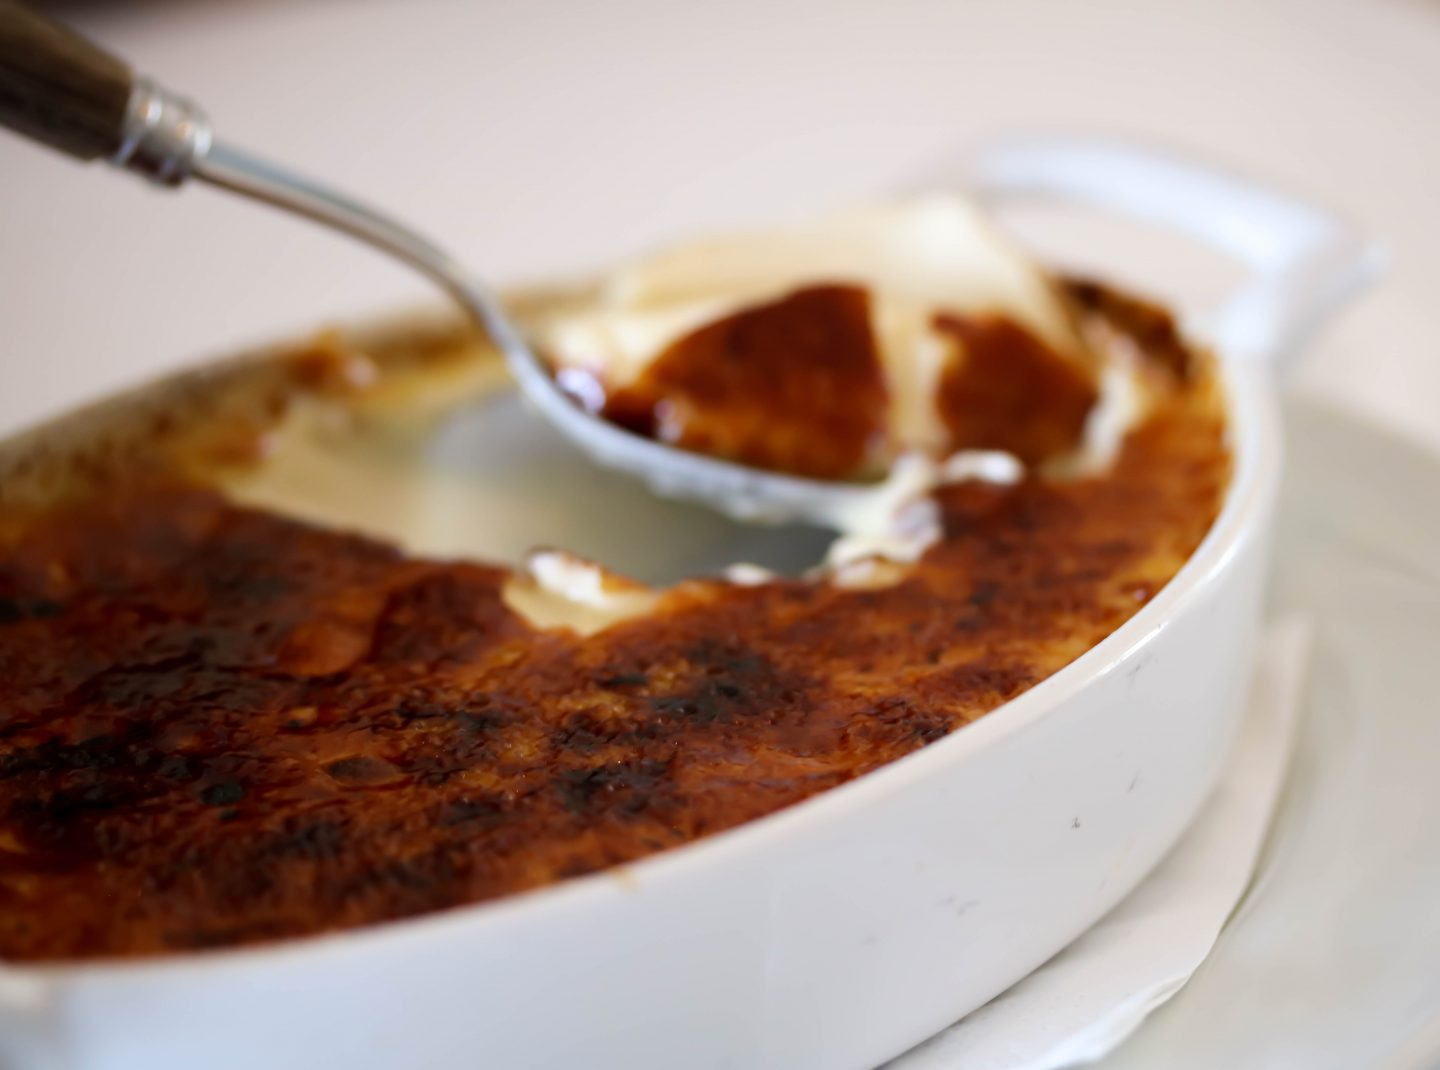 Creme Brulee at La Petite Maison, the best restaurant for lunch in Dubai on the Lifestyle Enthusiast blog